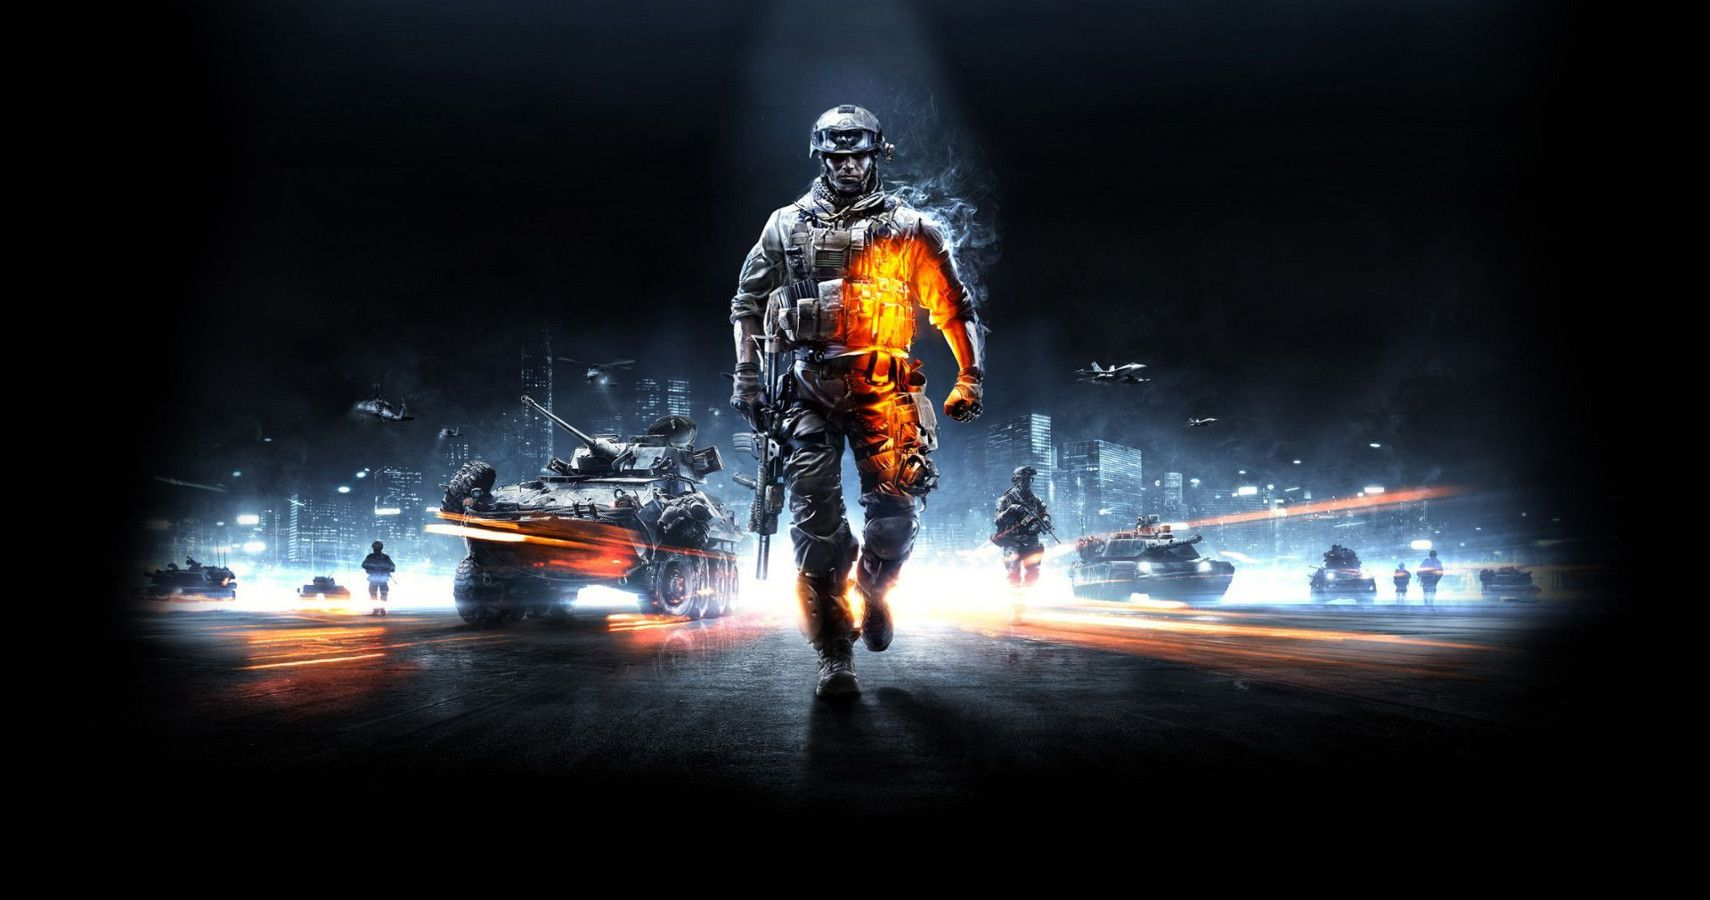 Battlefield 6 Is The First Time I'm Excited About The Series Since Battlefield 3